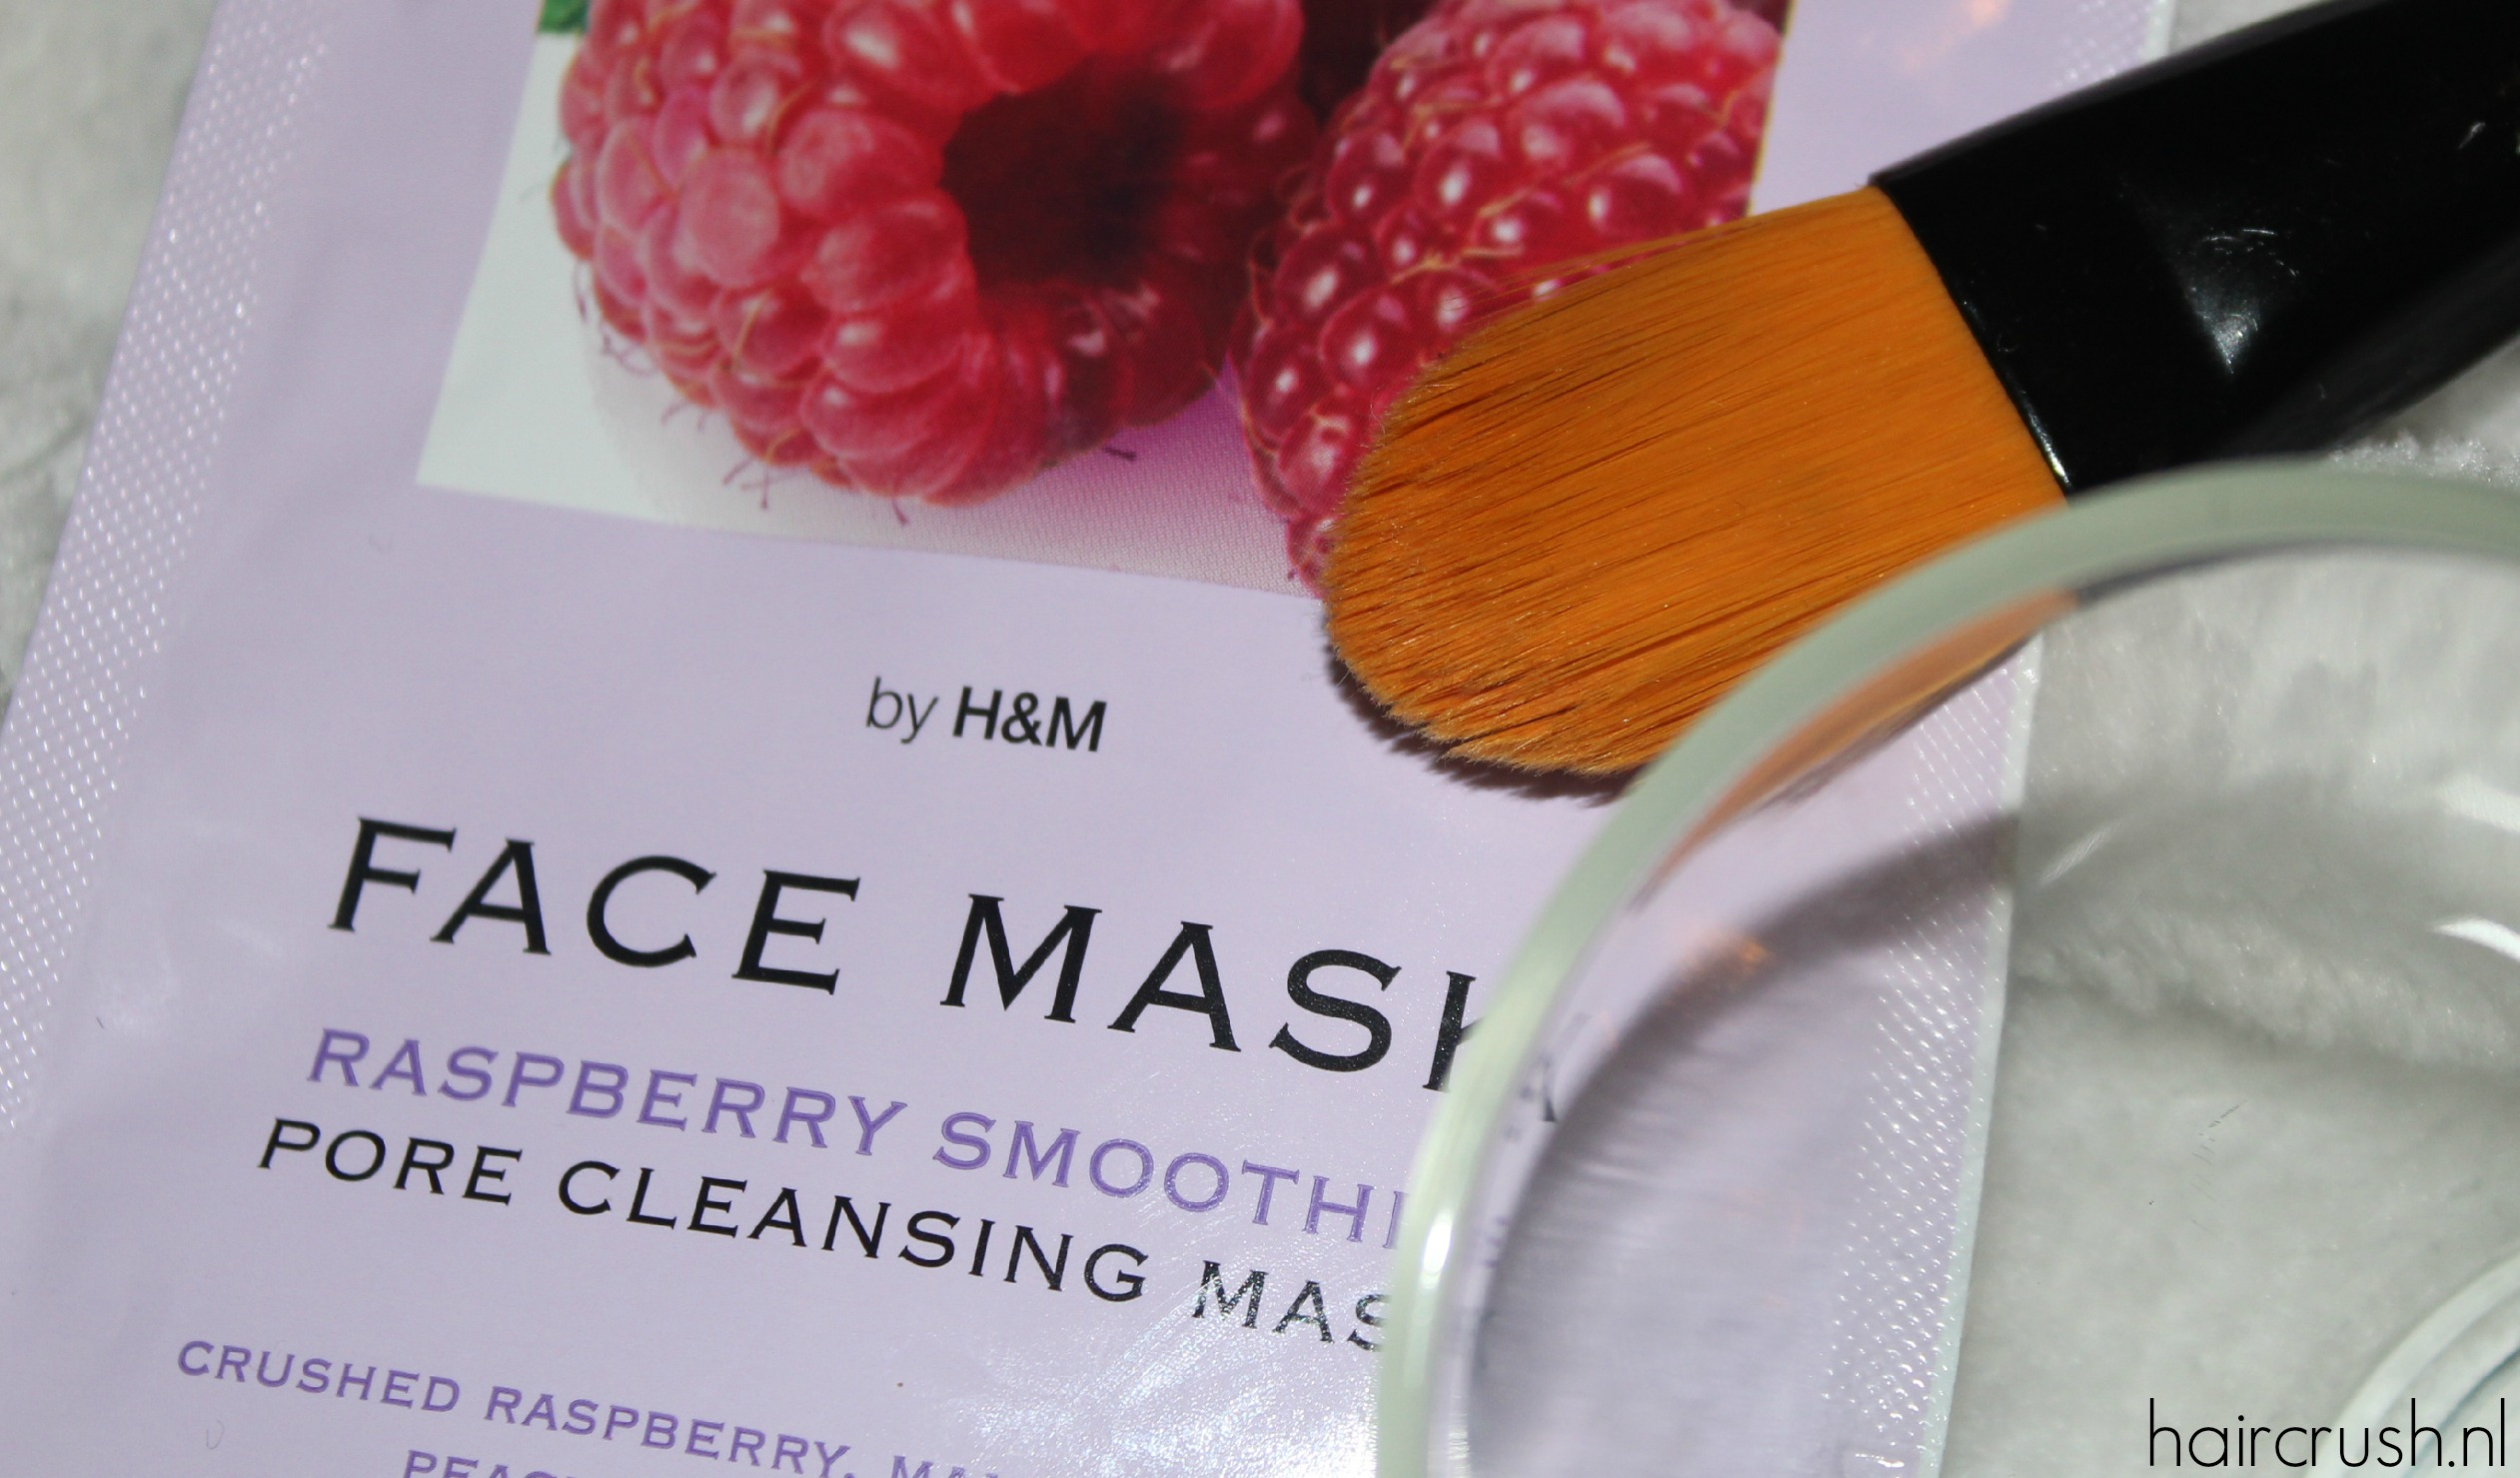 Raspberry Smoothie Pore Cleansing Face Mask02